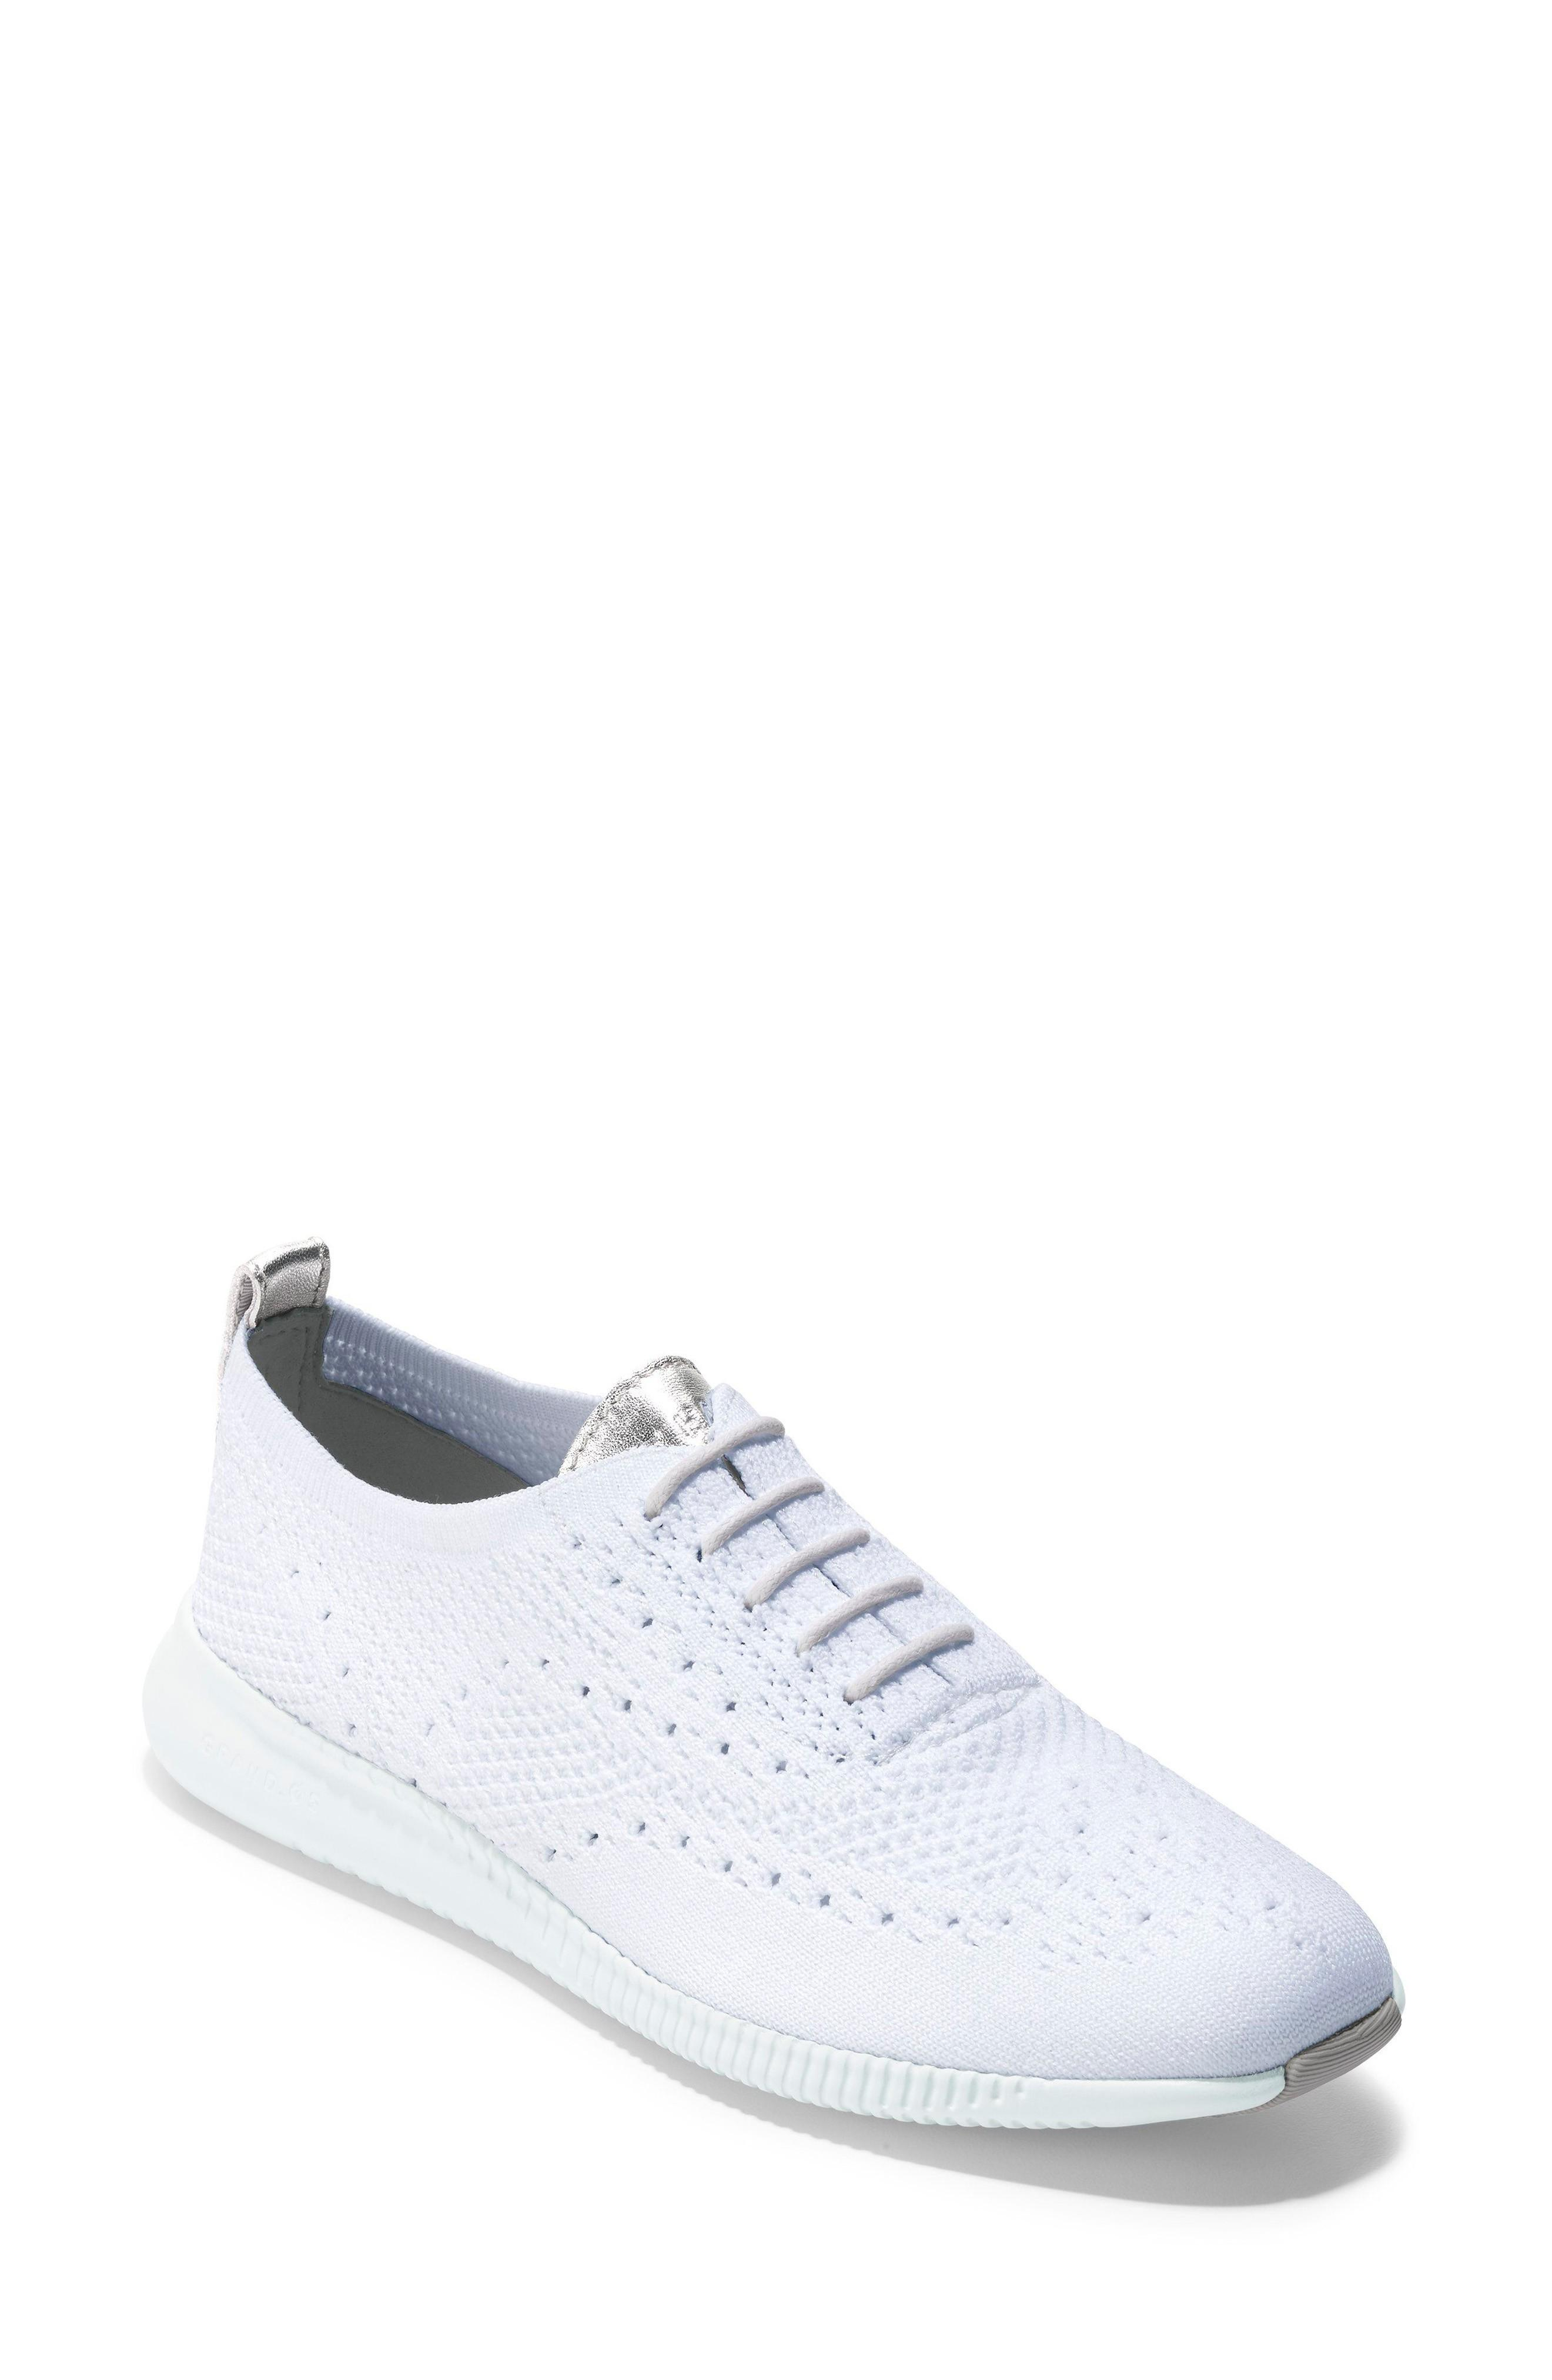 7a111ff37b Cole Haan 2.Zerogrand Stitchlite Knit Wingtip Oxford Sneakers, White In  Optic White Knit